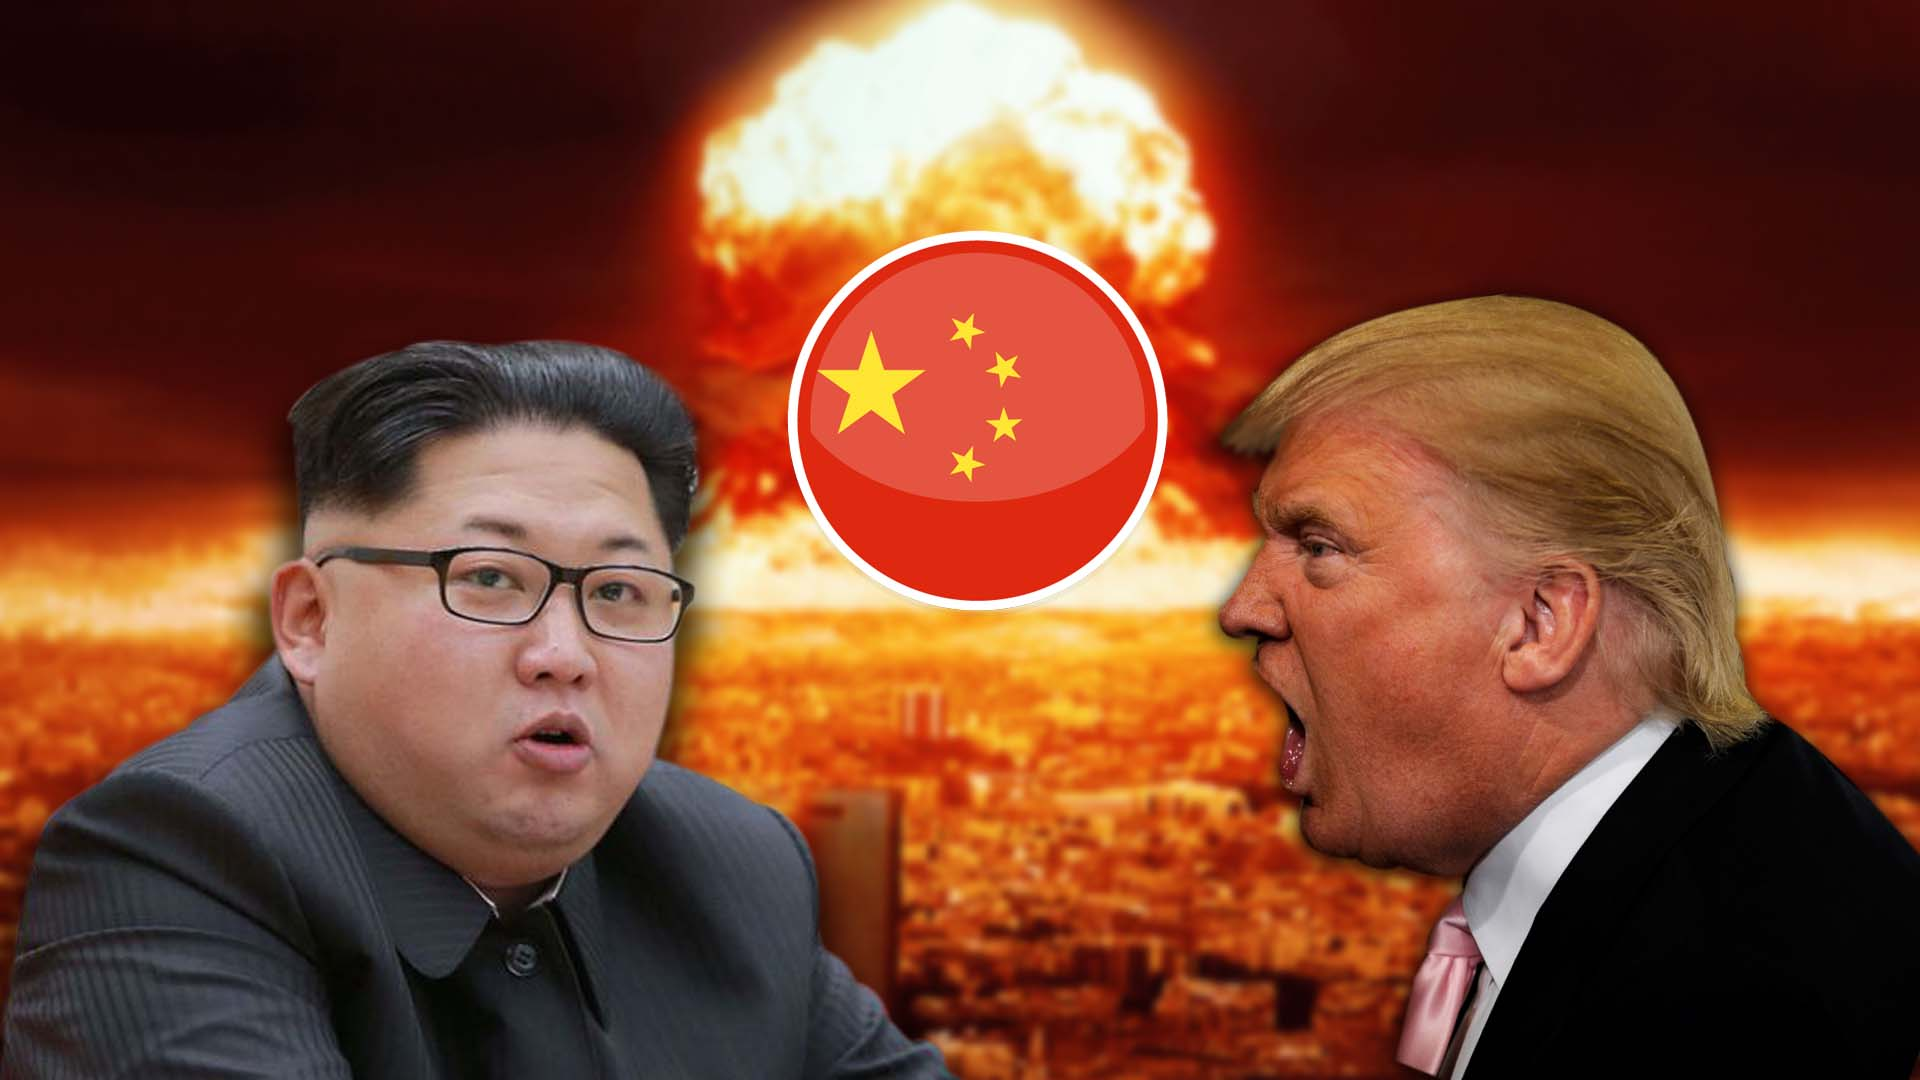 China sides with North Korea: Is the World on the Brink of Another World War?